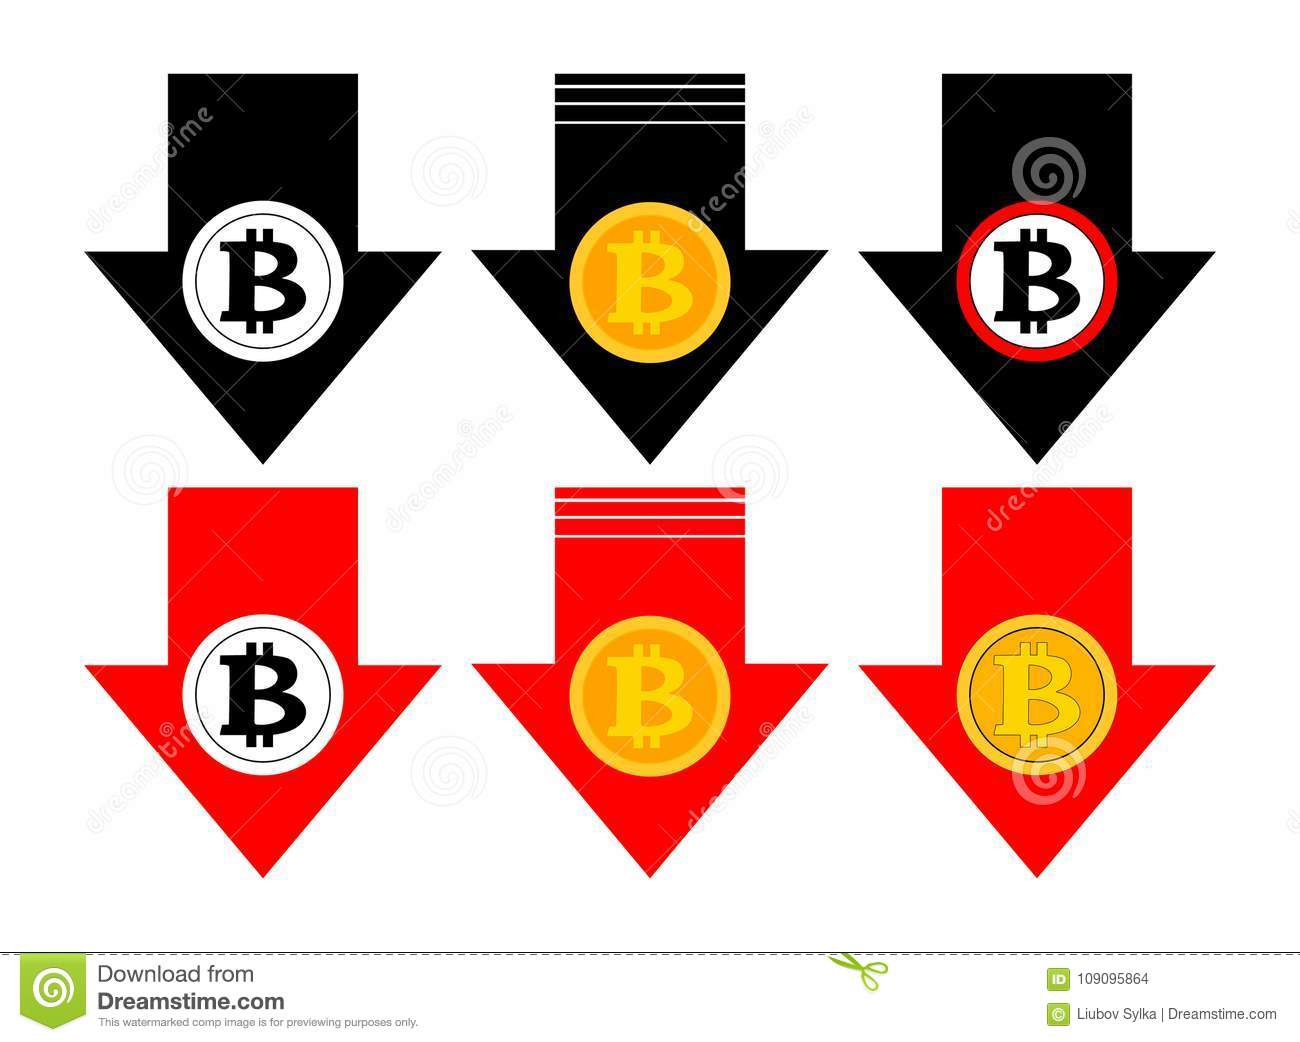 Bitcoin rate falling color icon. Cryptocurrency with down arrow. Bit coin collapse Falls Down. Vector Illustration.